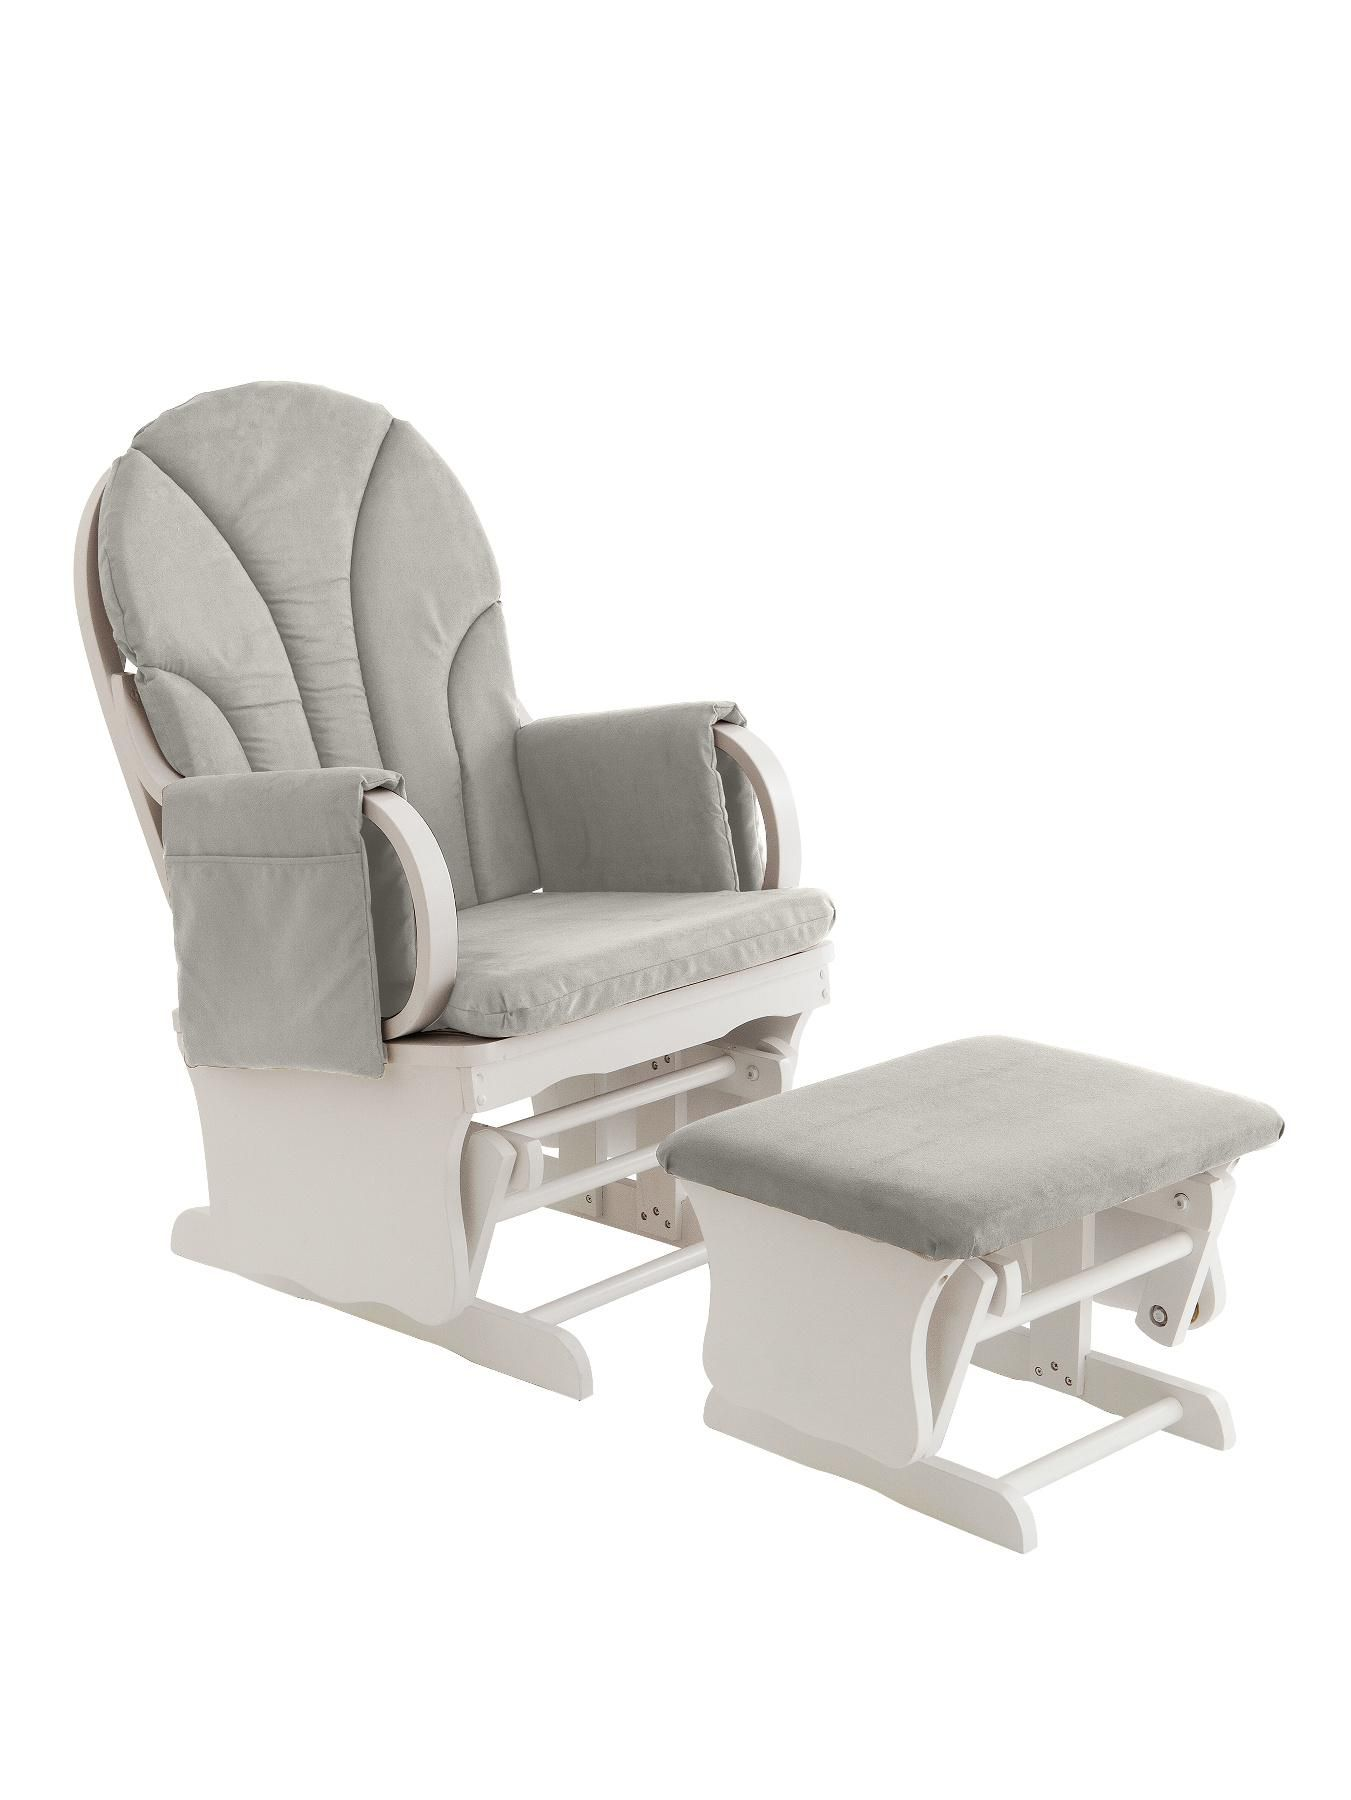 Baby Nursing Chair Womens Mens And Kids Fashion Furniture Electricals More